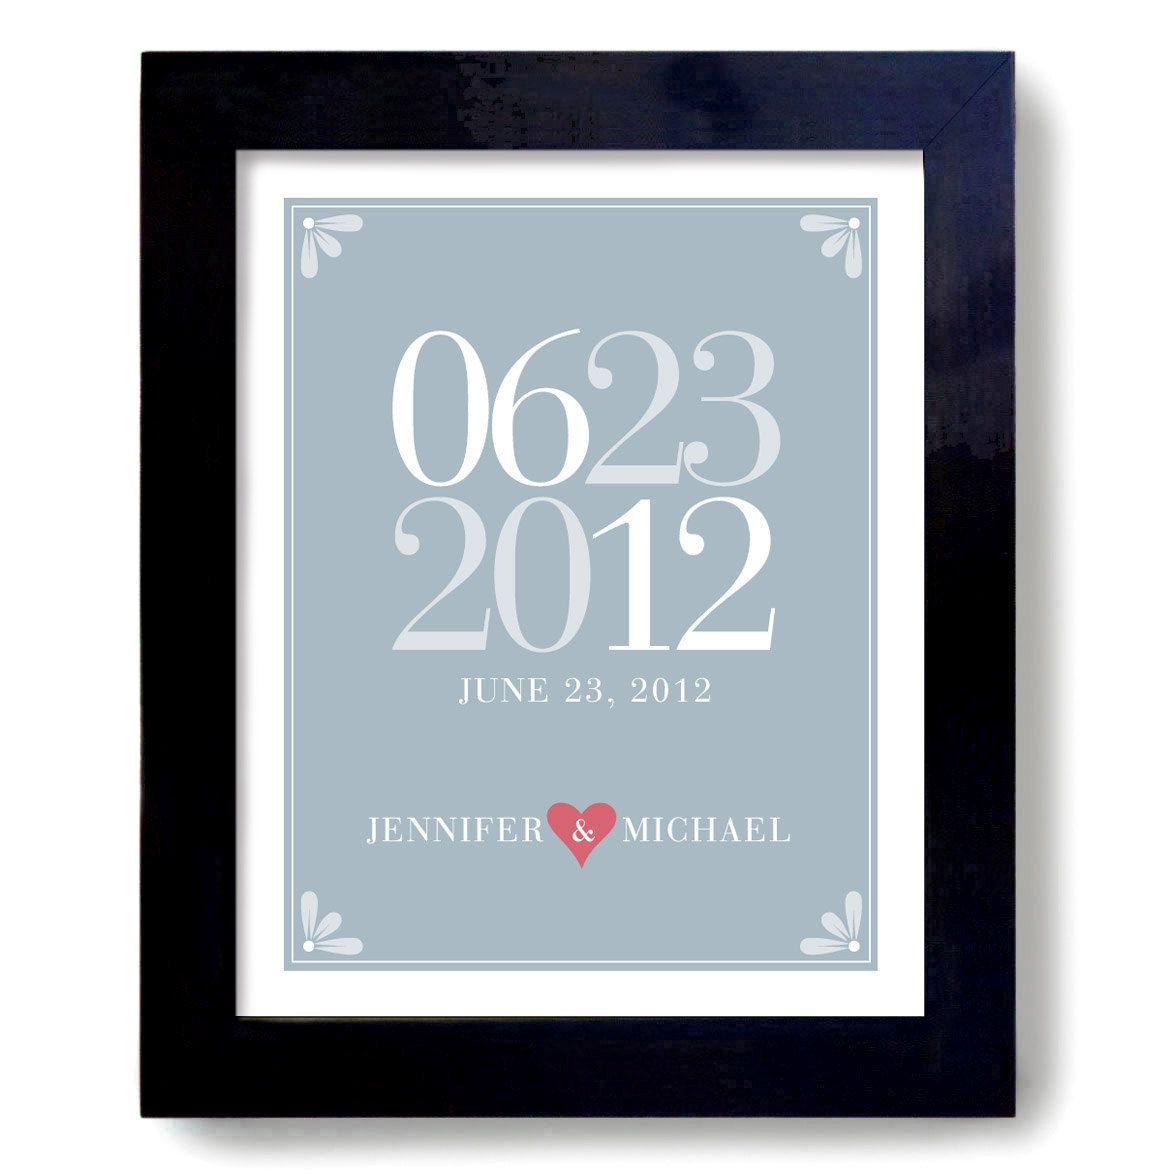 Etsy Wedding Gifts: Custom Wedding Gift Art Print Personalized For Couples